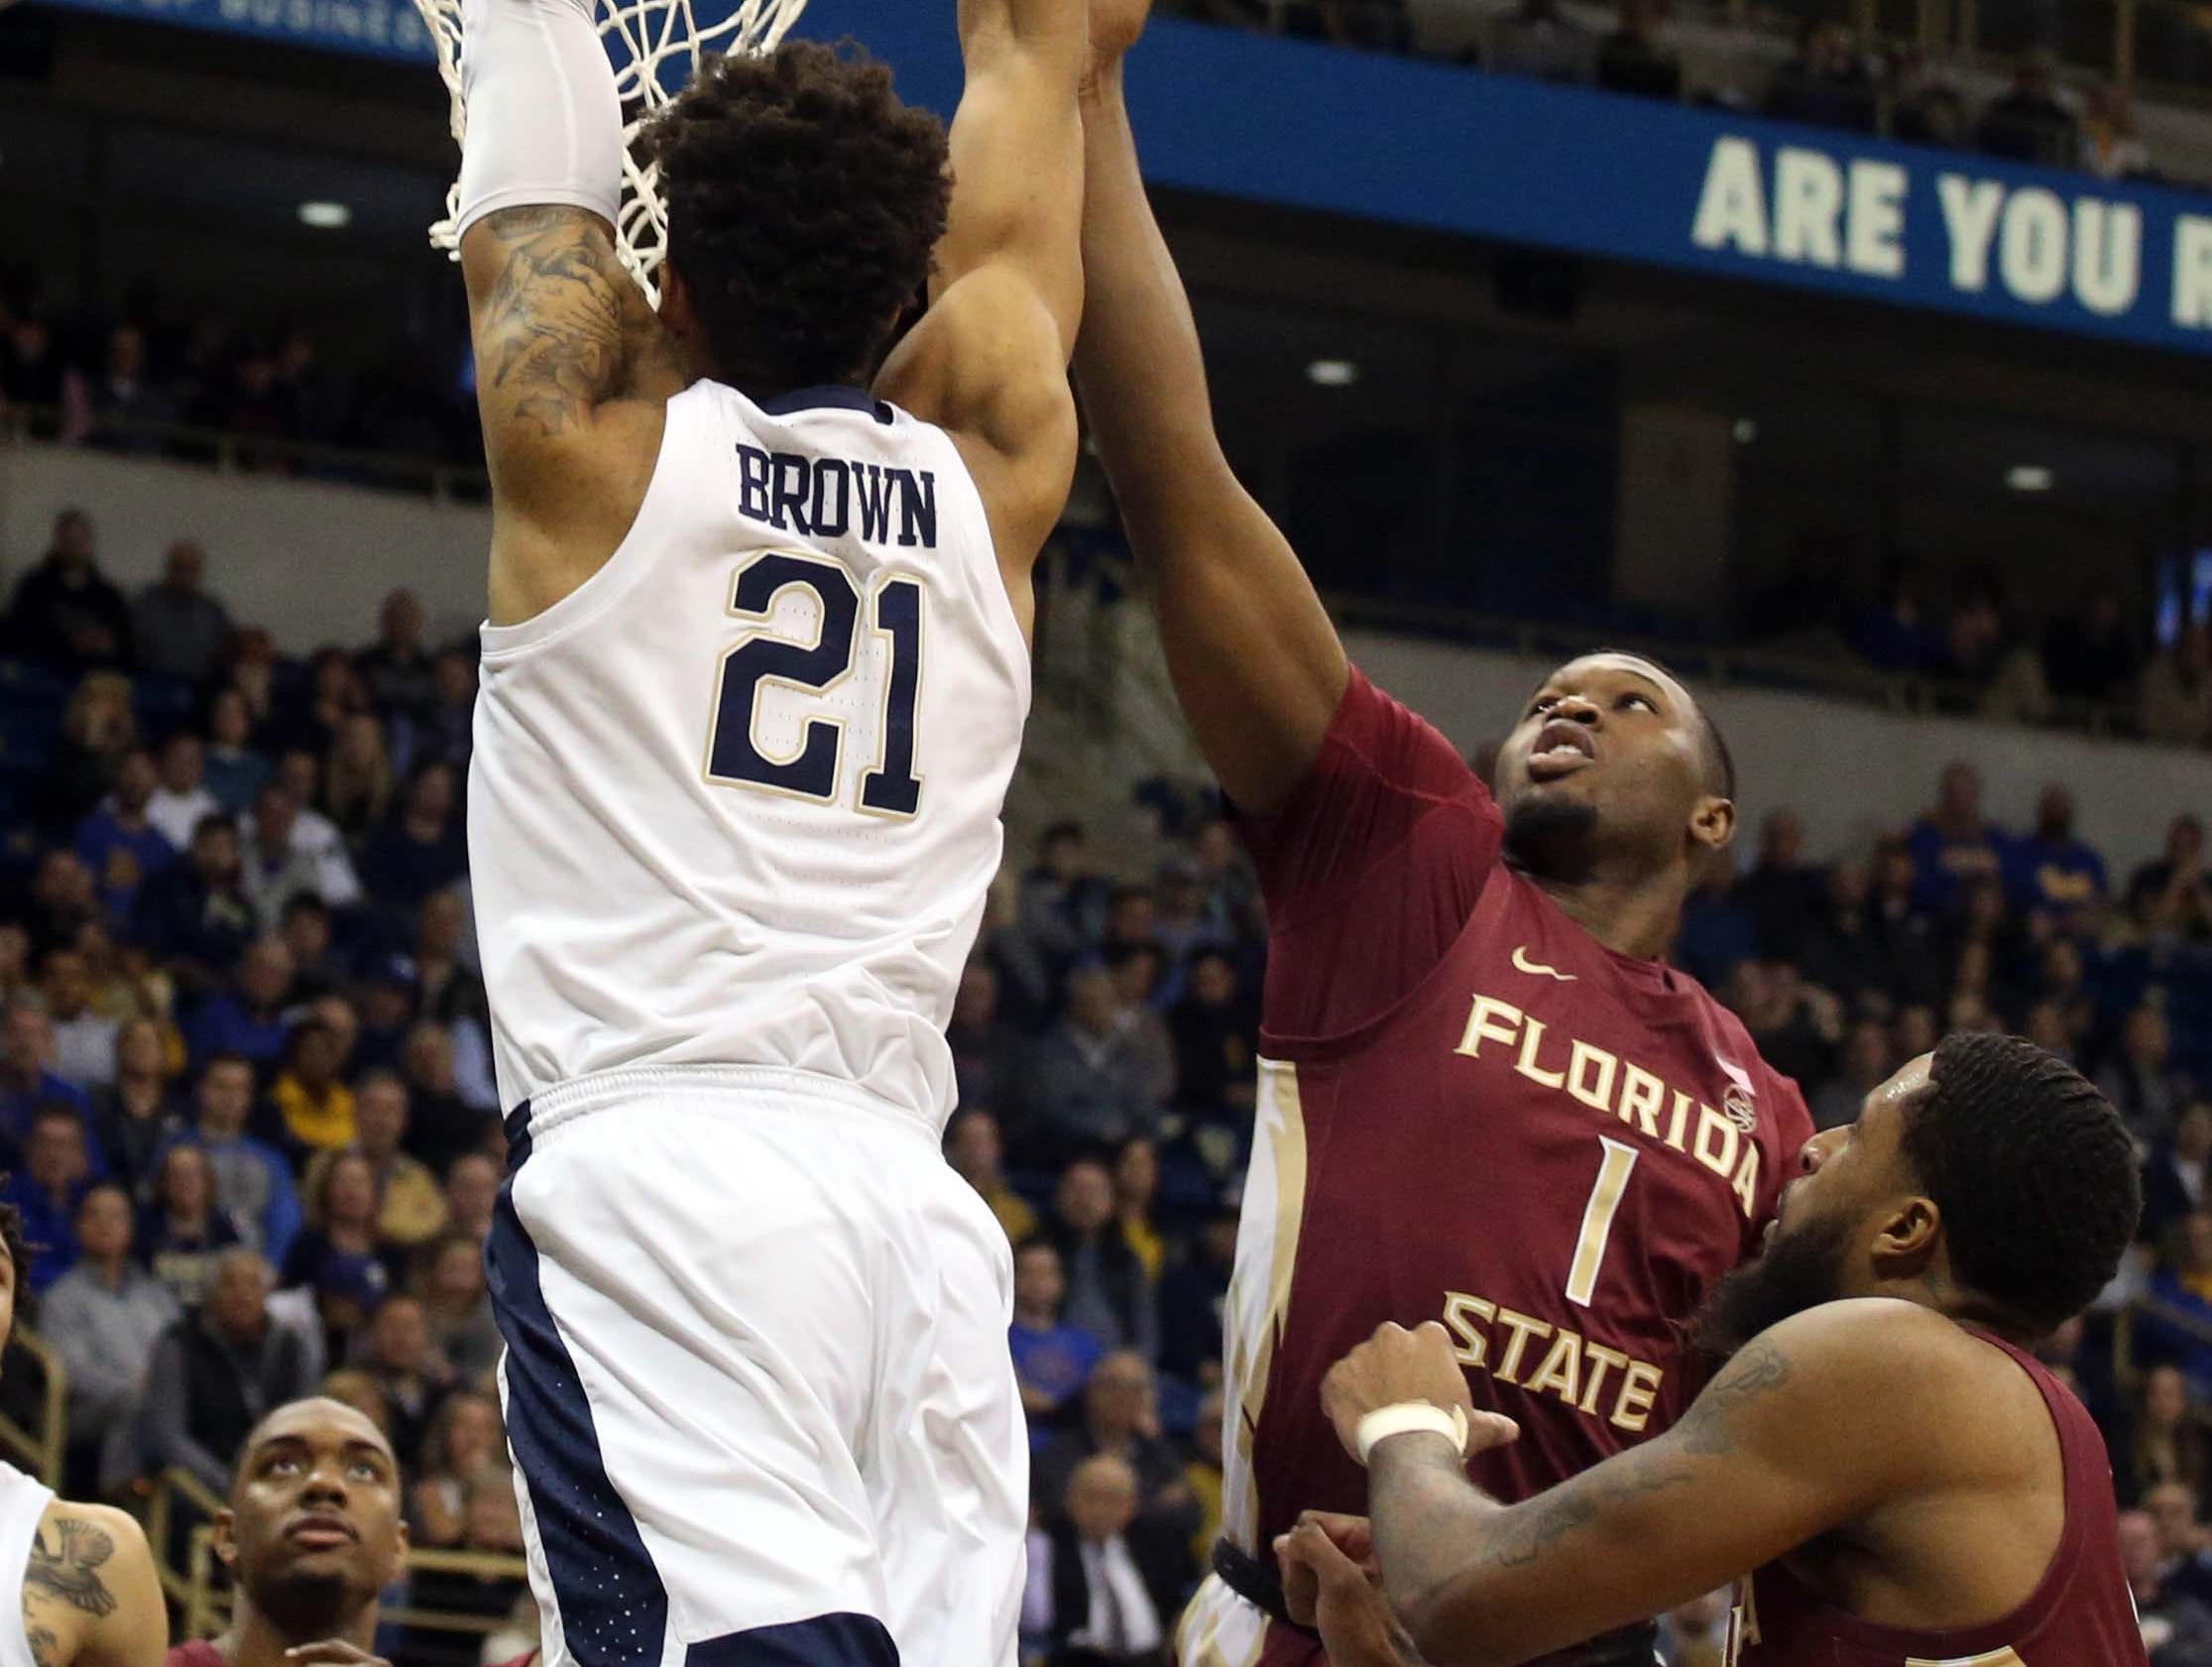 Jan 14, 2019; Pittsburgh, PA, USA; Pittsburgh Panthers forward Terrell Brown (21) dunks against Florida State Seminoles forward Raiquan Gray (1) during the second half at the Petersen Events Center. Pittsburgh won 75-62. Mandatory Credit: Charles LeClaire-USA TODAY Sports